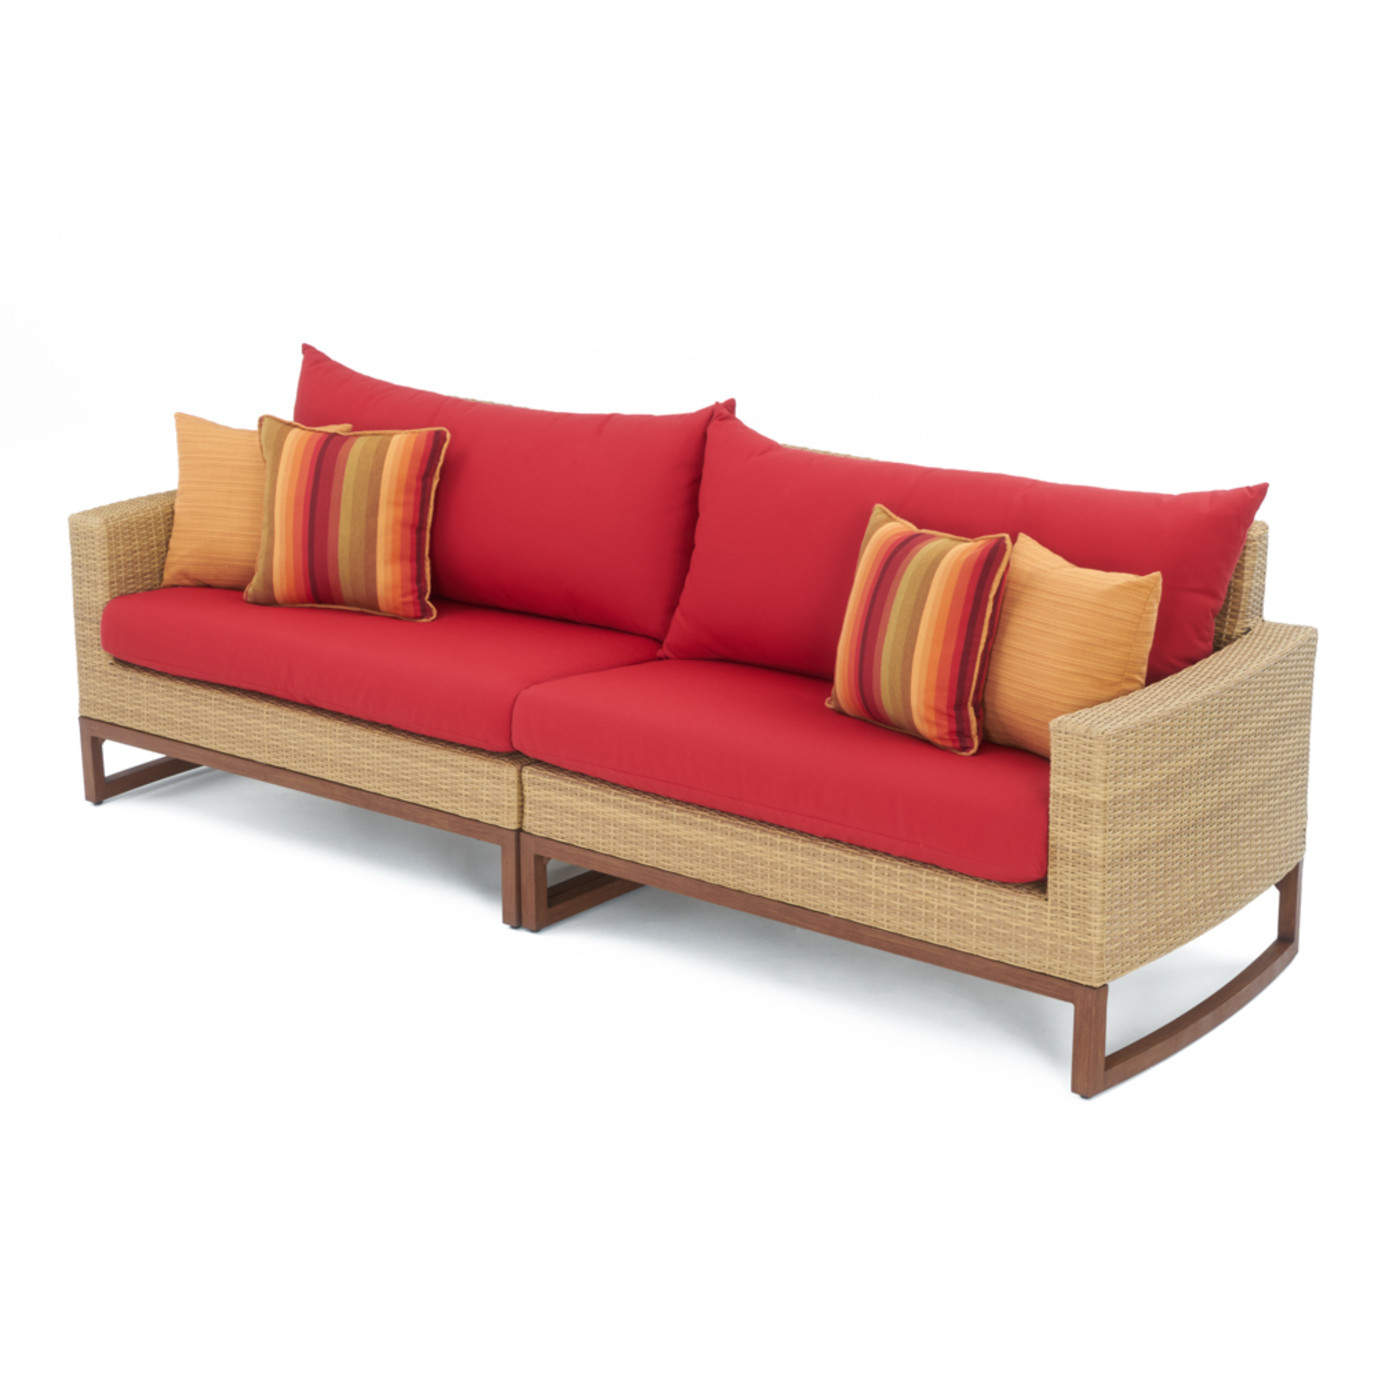 Mili™ 8 Piece Deep Seating Set - Sunset Red